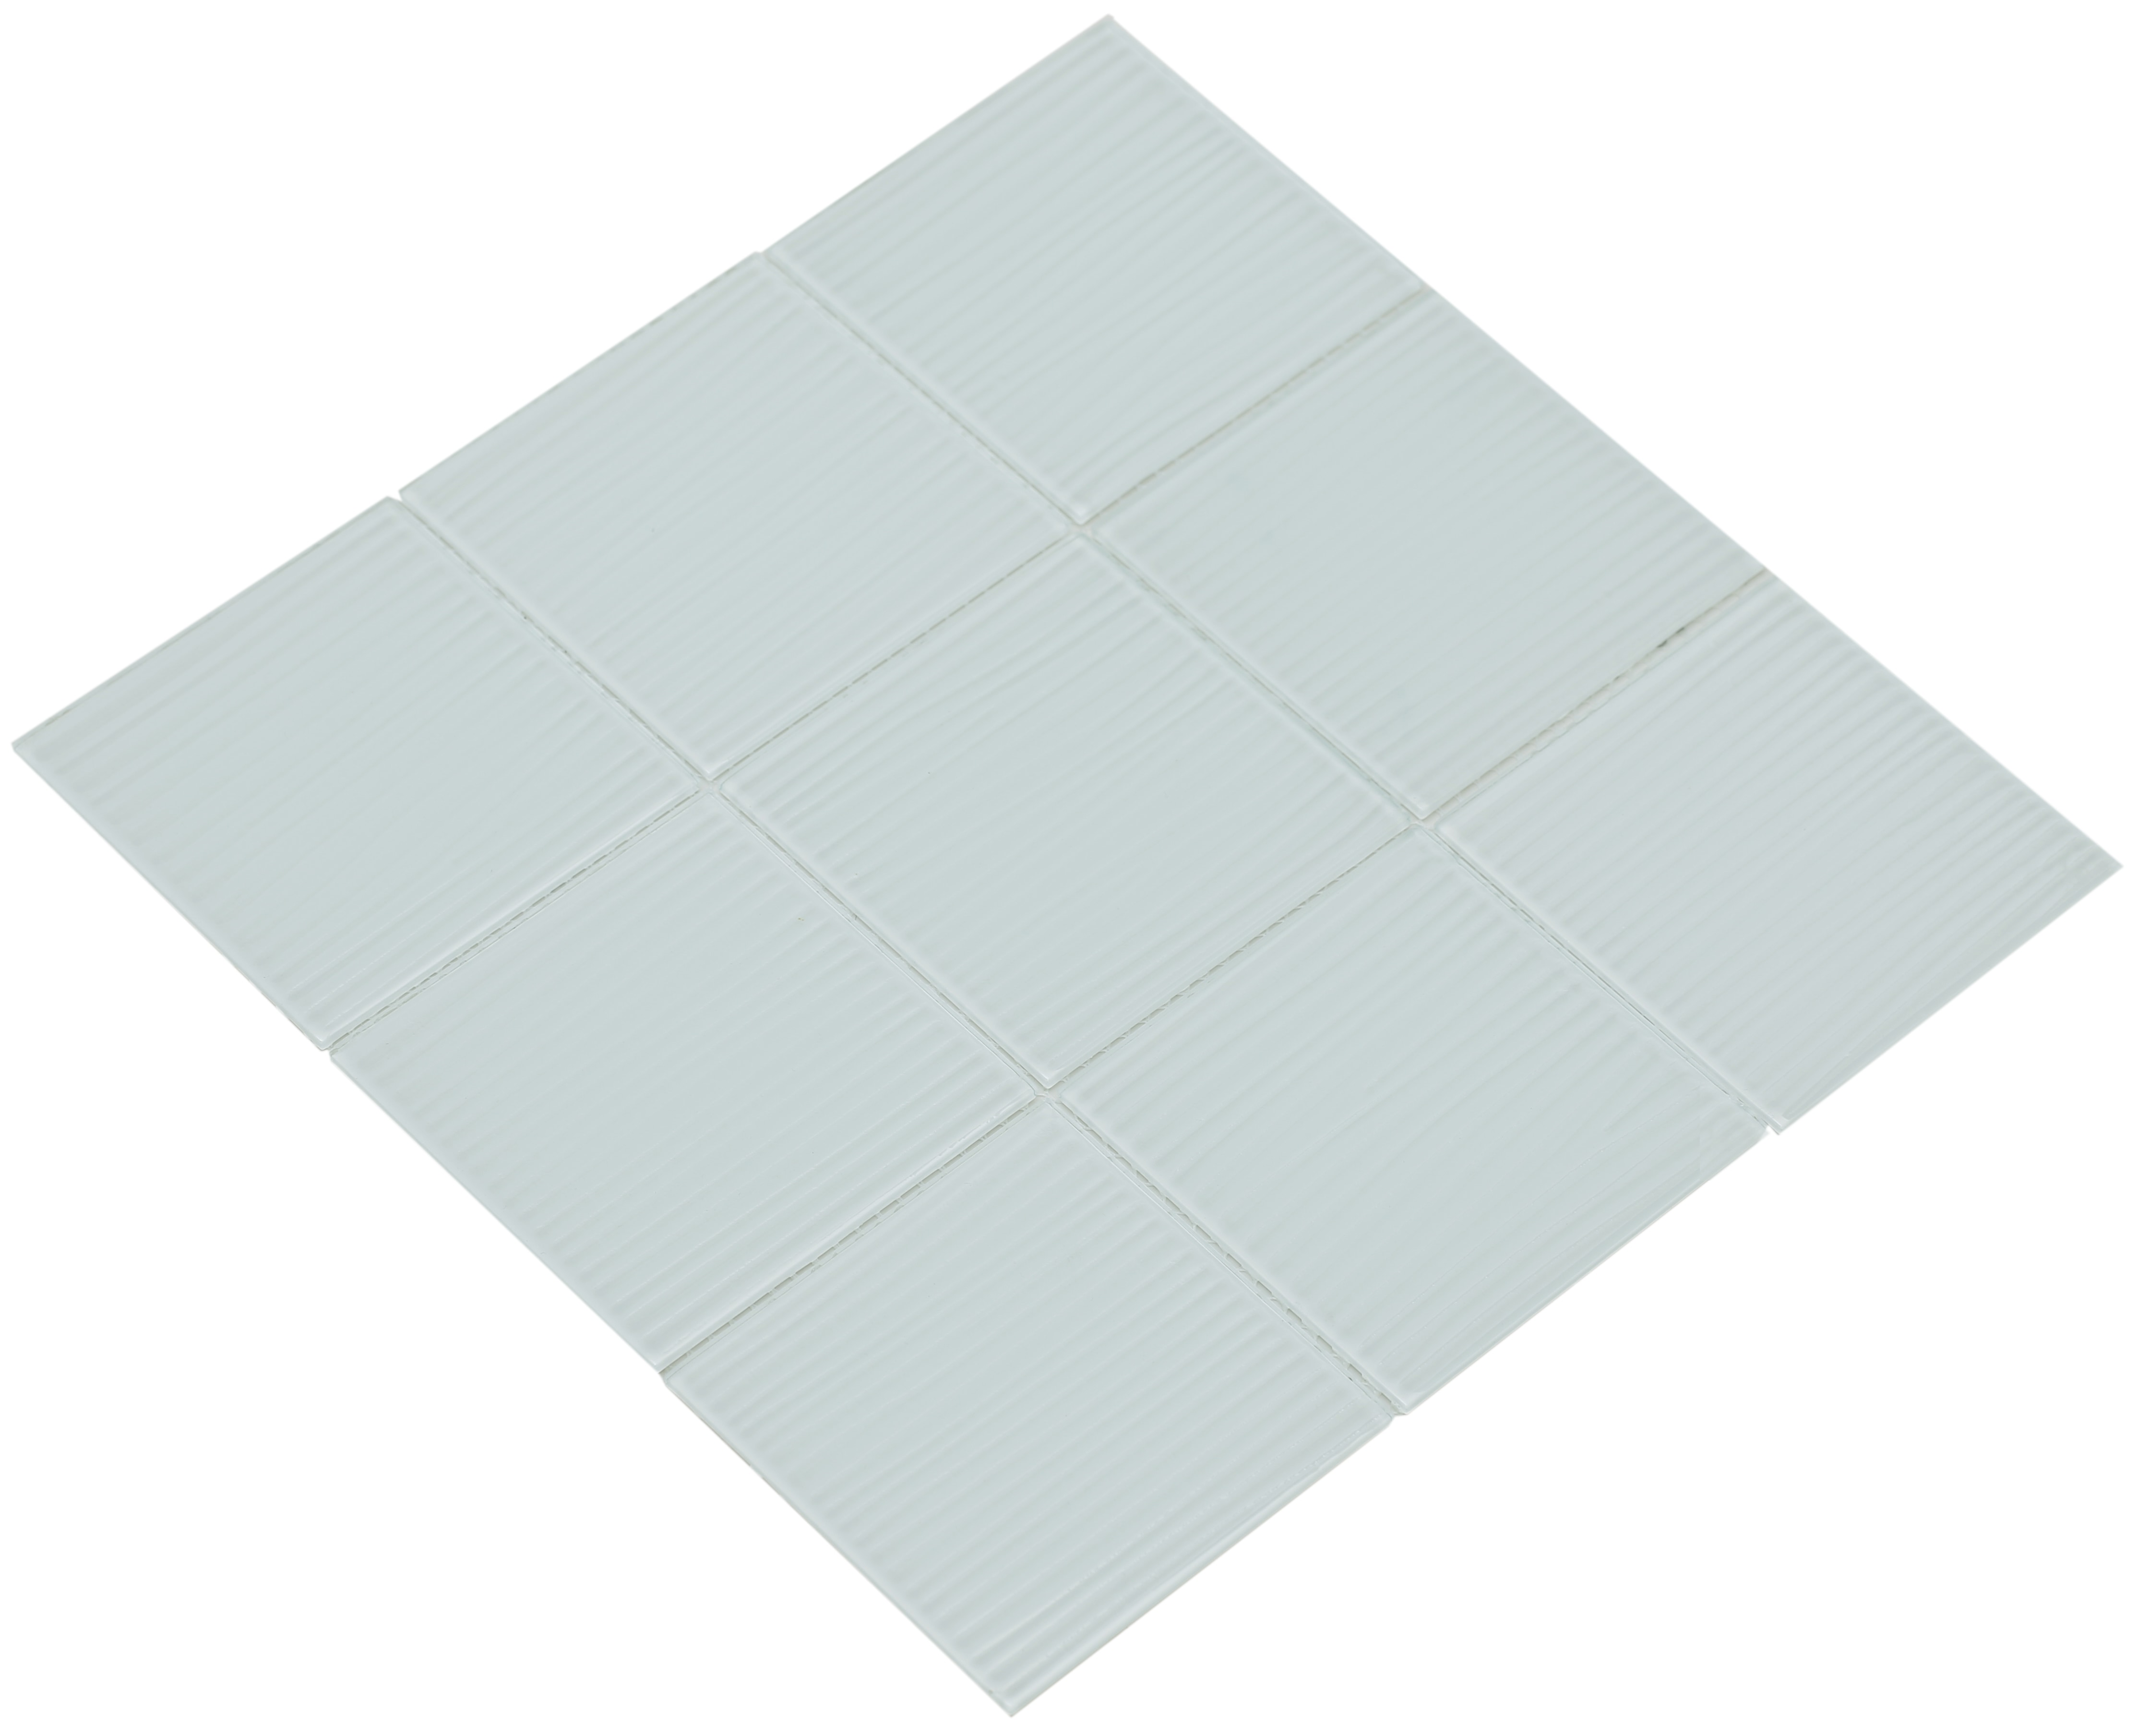 """Shiny white glass with a brushed texture / 4""""x4"""" Shilla Series 0"""